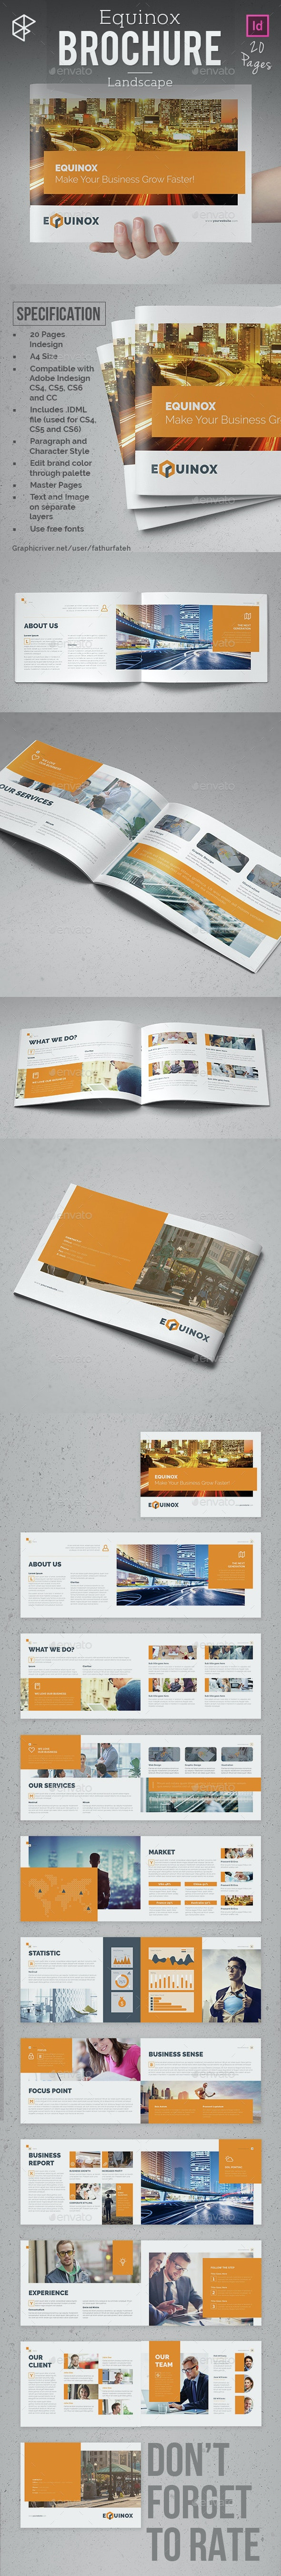 Equinox Brochure - Landscape - Corporate Brochures